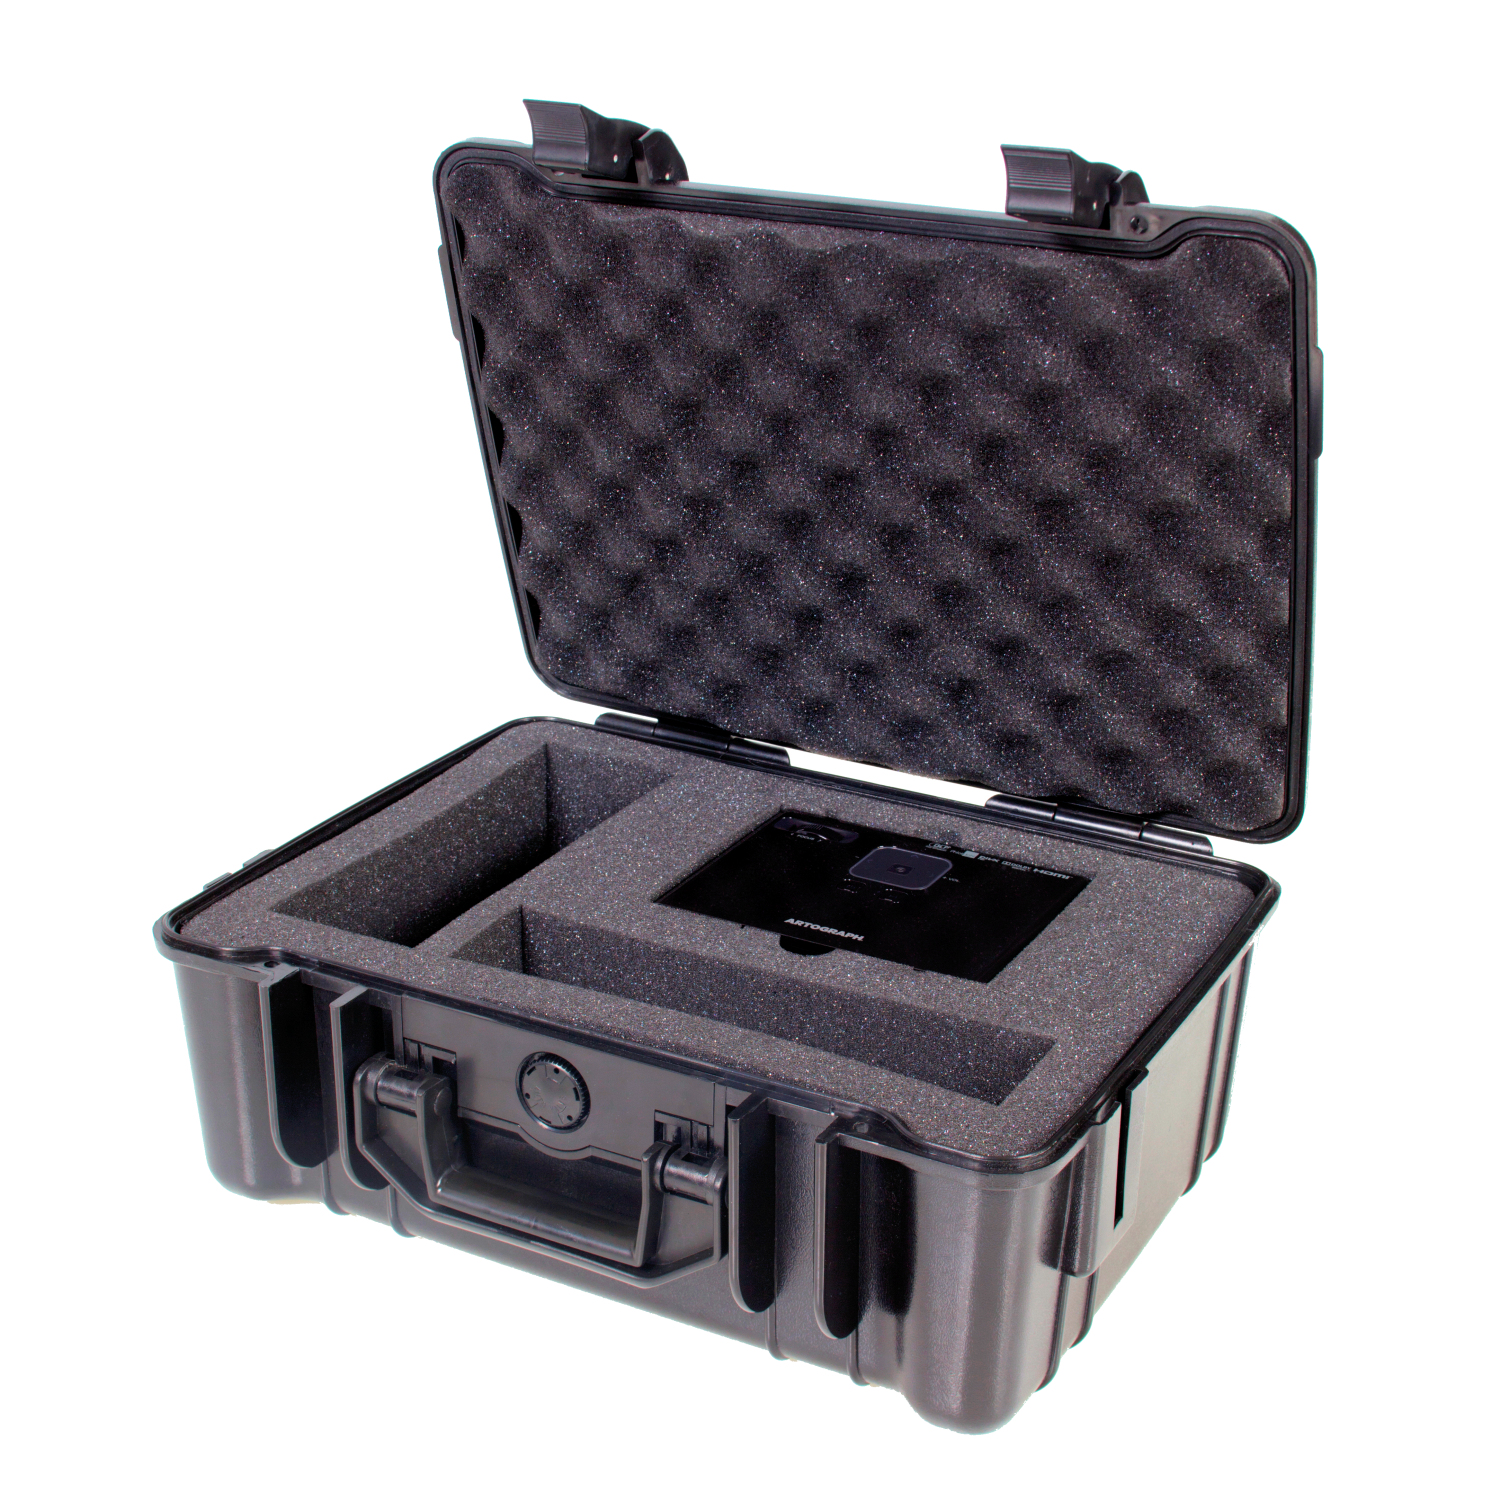 225-702 Hard Case for Digital Projectors from Artograph